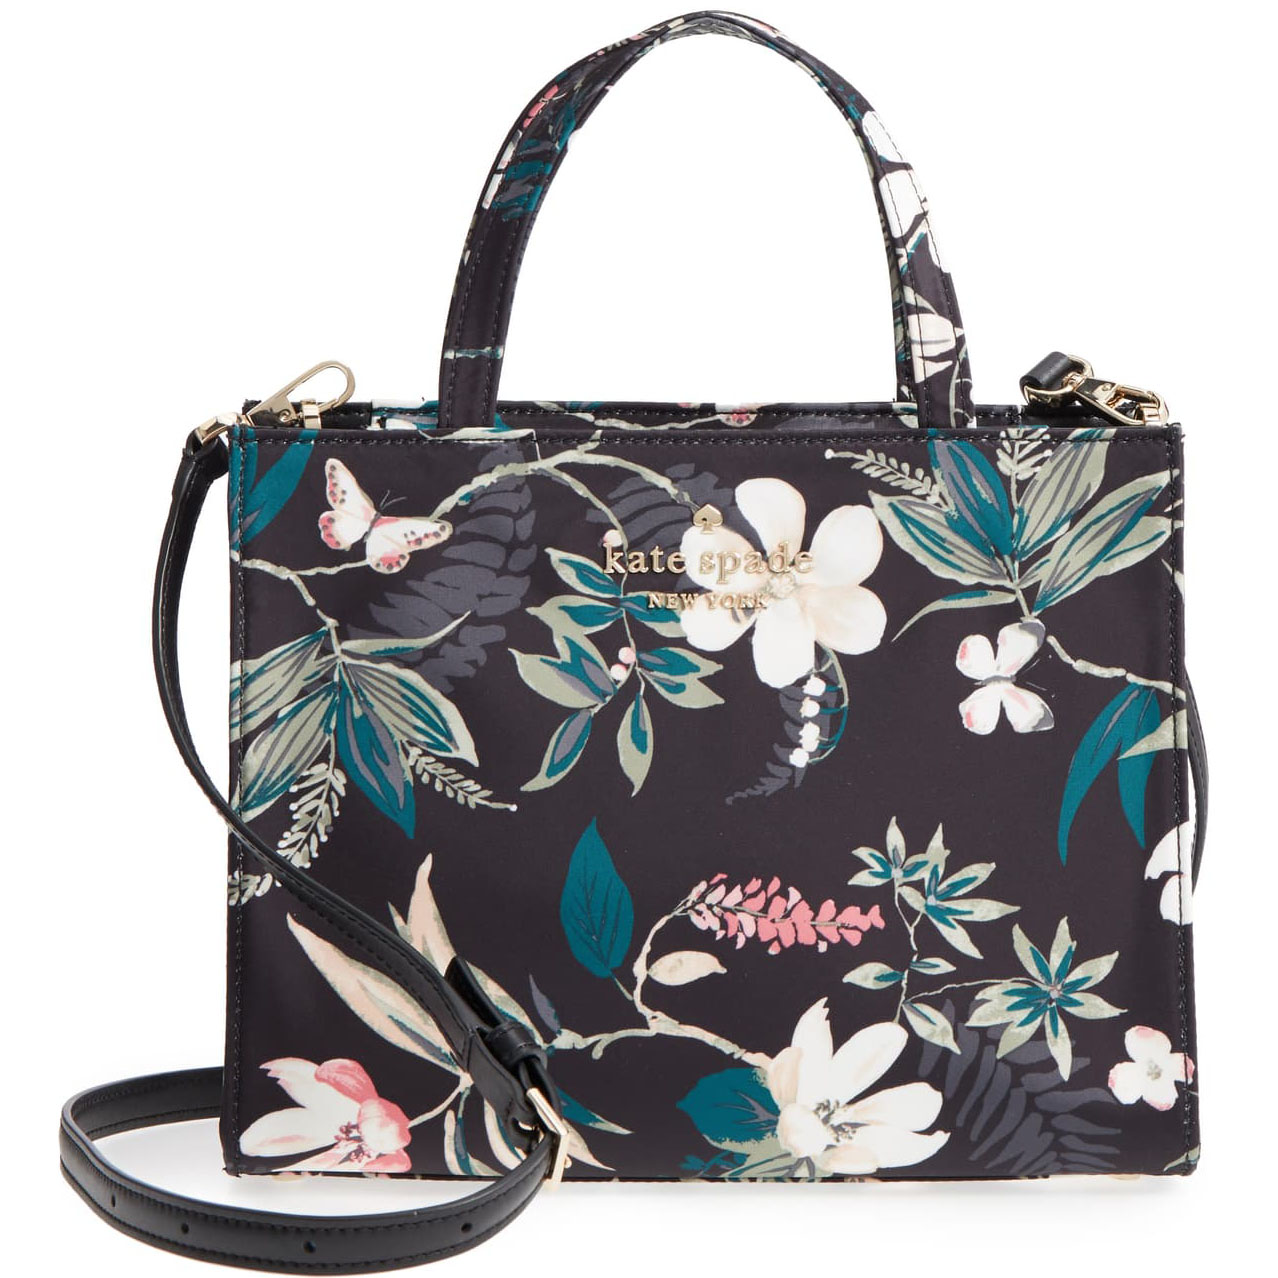 Kate Spade Watson Lane Botanical Sam Crossbody Bag Black Floral # PXRU8816